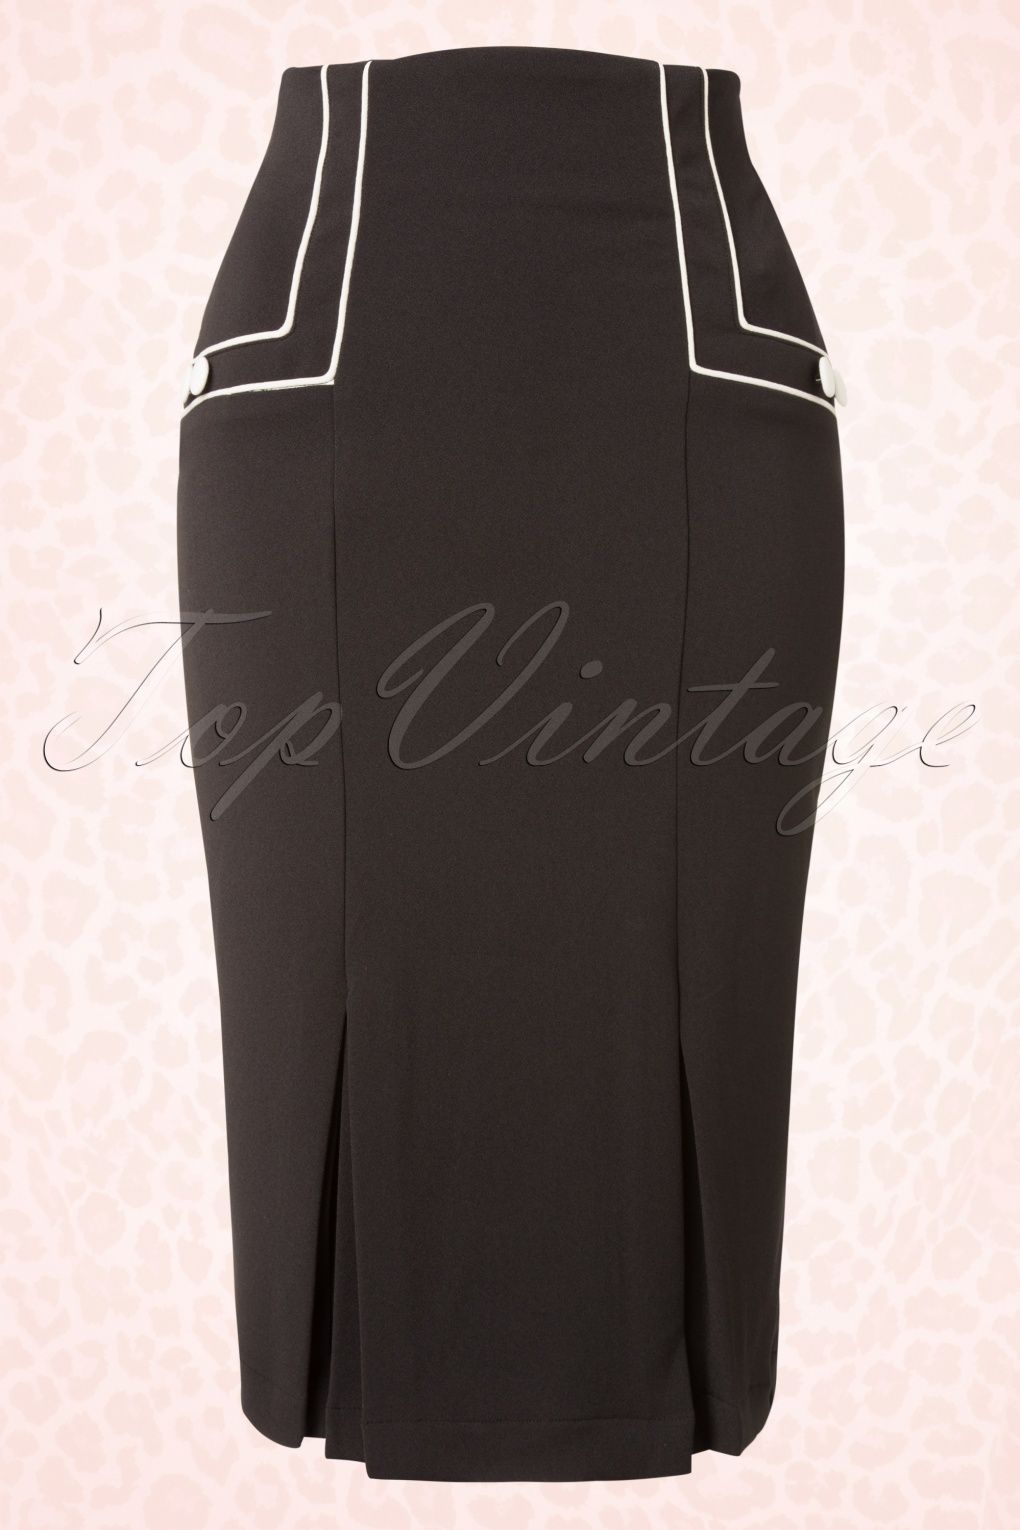 This s savannah pencil skirt in black by bunny is a classy pencil